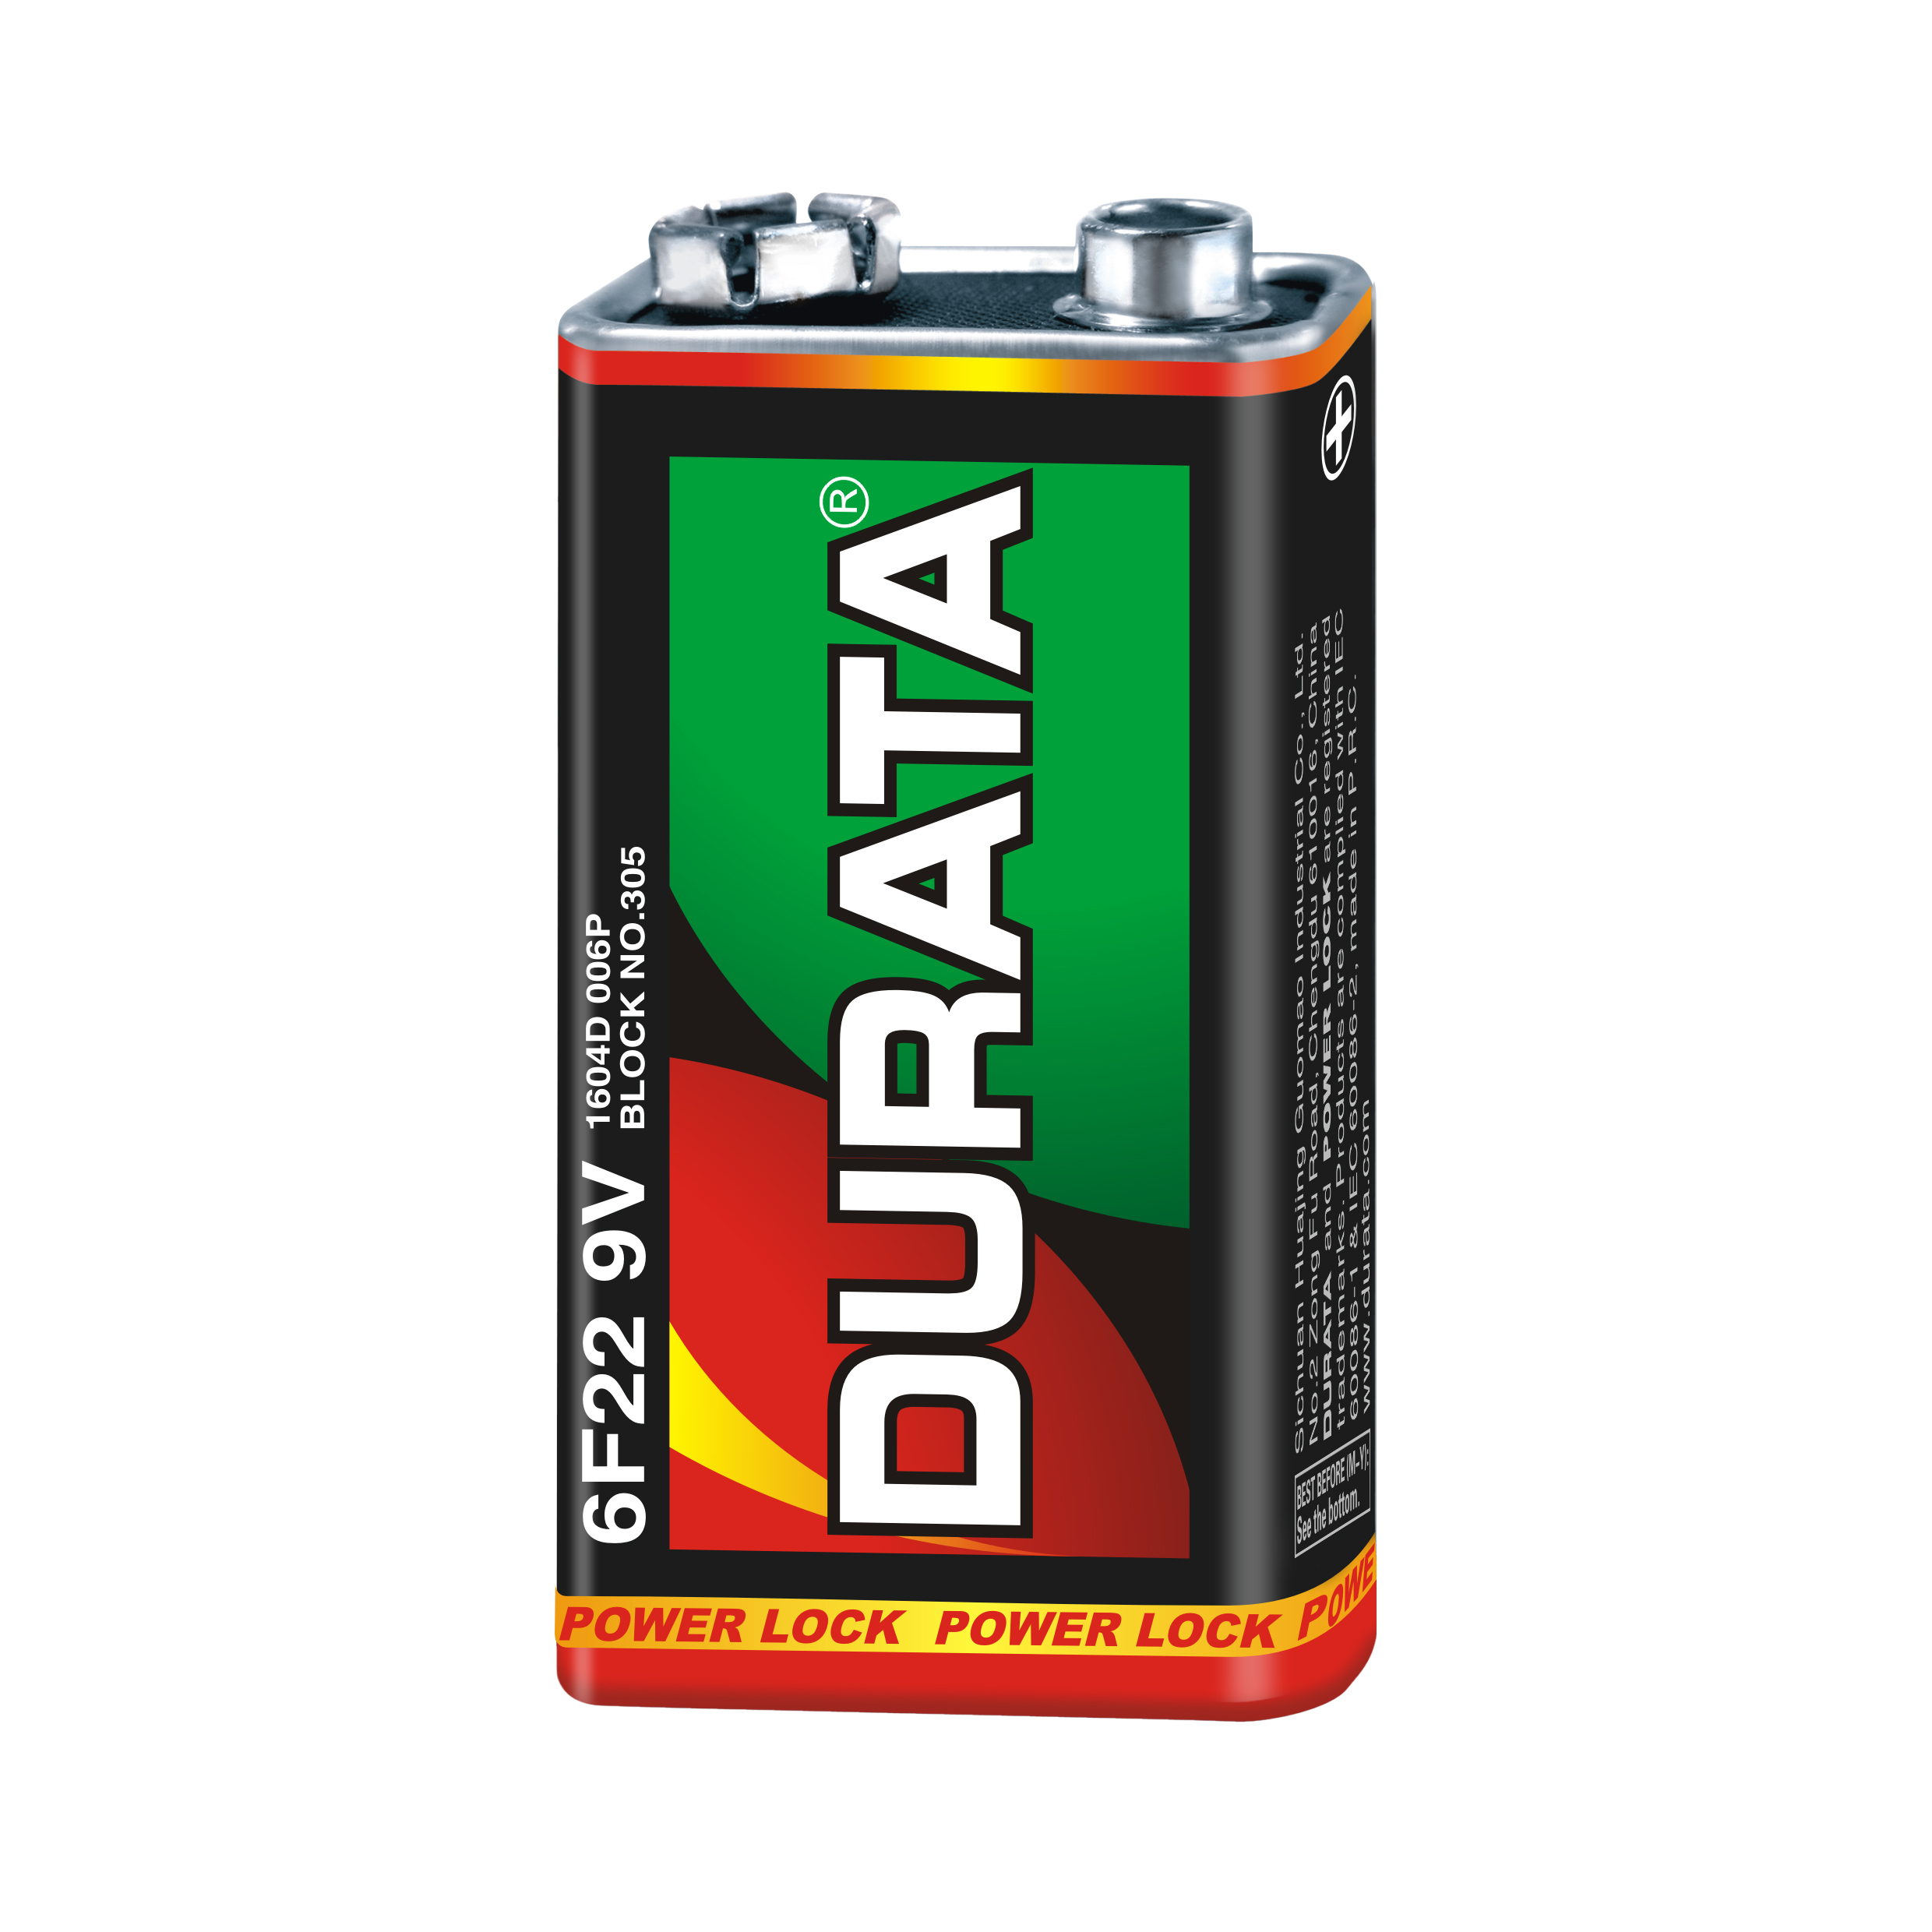 DURATA 9V - Shrink Pack 1 Battery